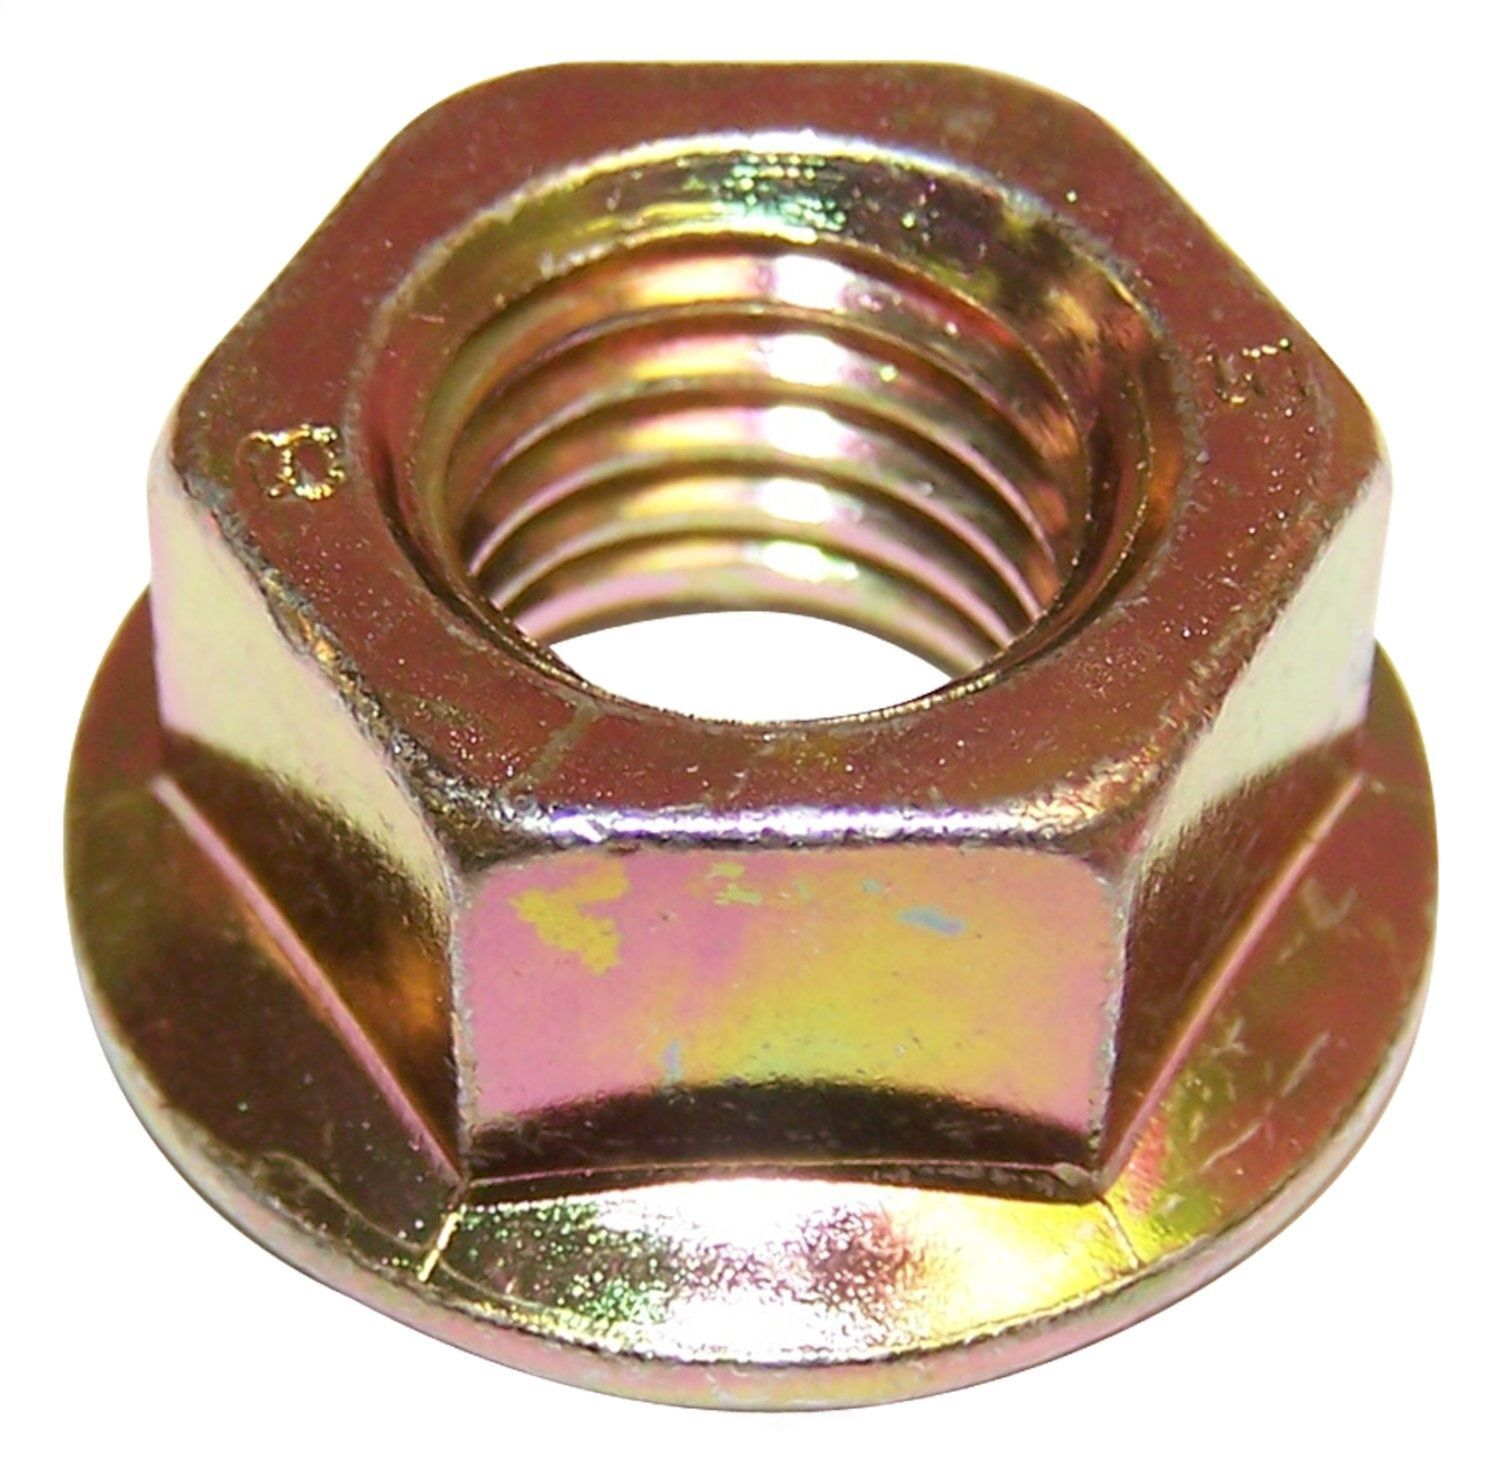 CROWN AUTOMOTIVE SALES CO. - Flanged Hex Nut - CAJ 6502697